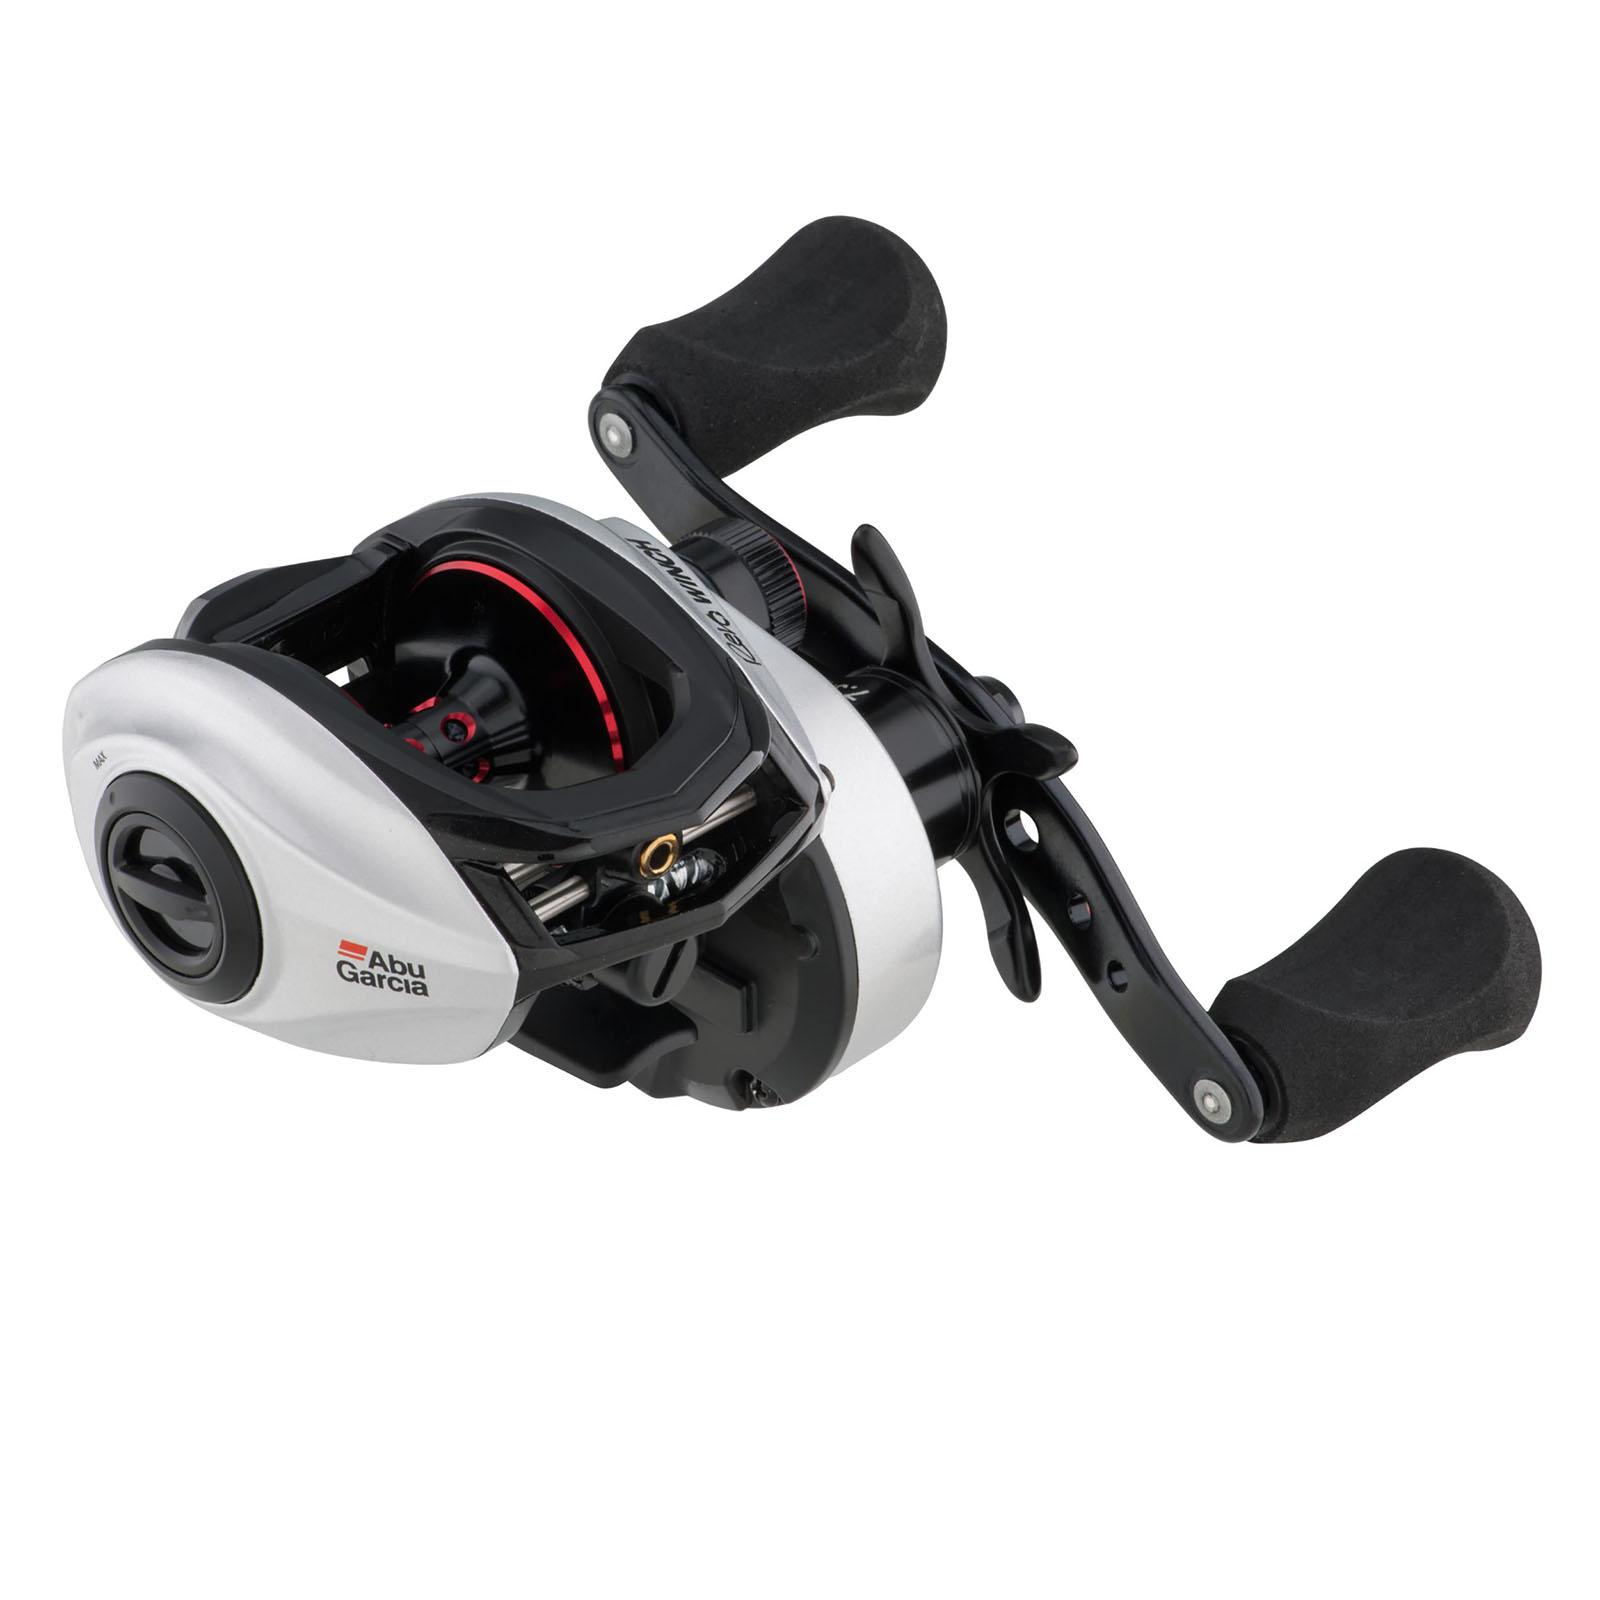 Abu Garcia Revo Winch Low-Profile